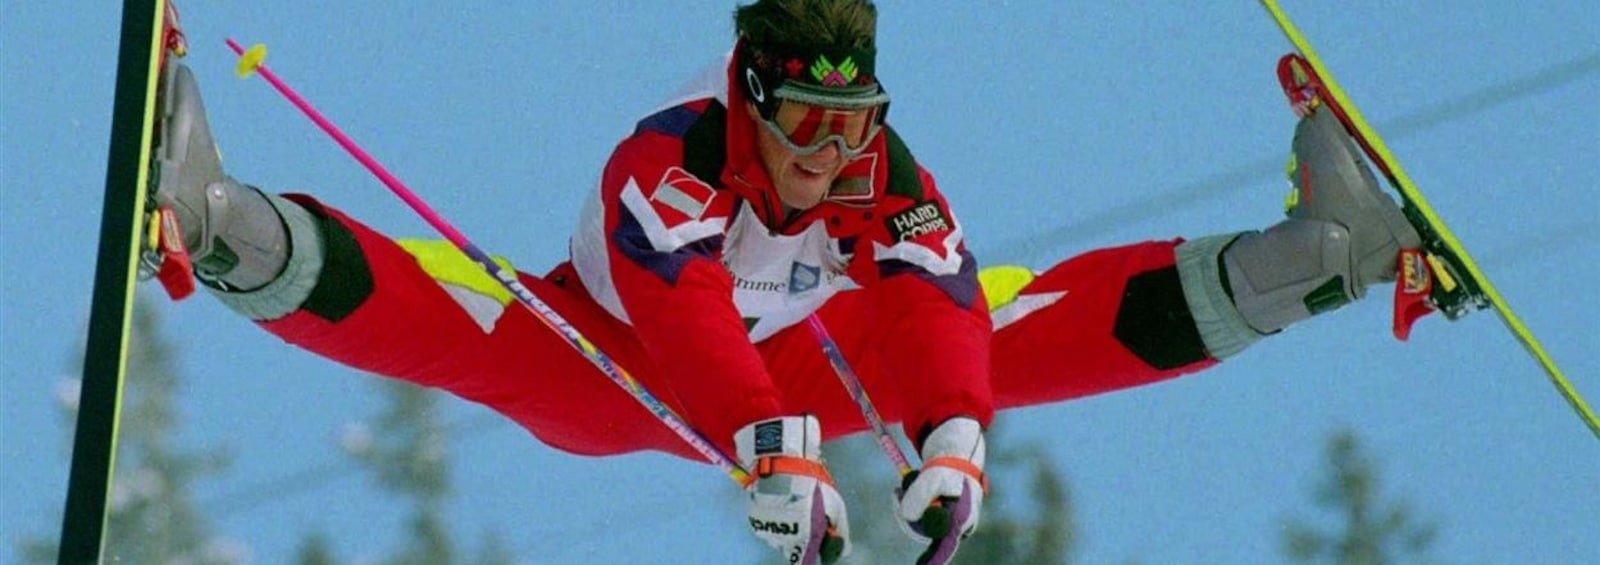 Jean-Luc Brassard at the Lillehammer Olympics in 1994